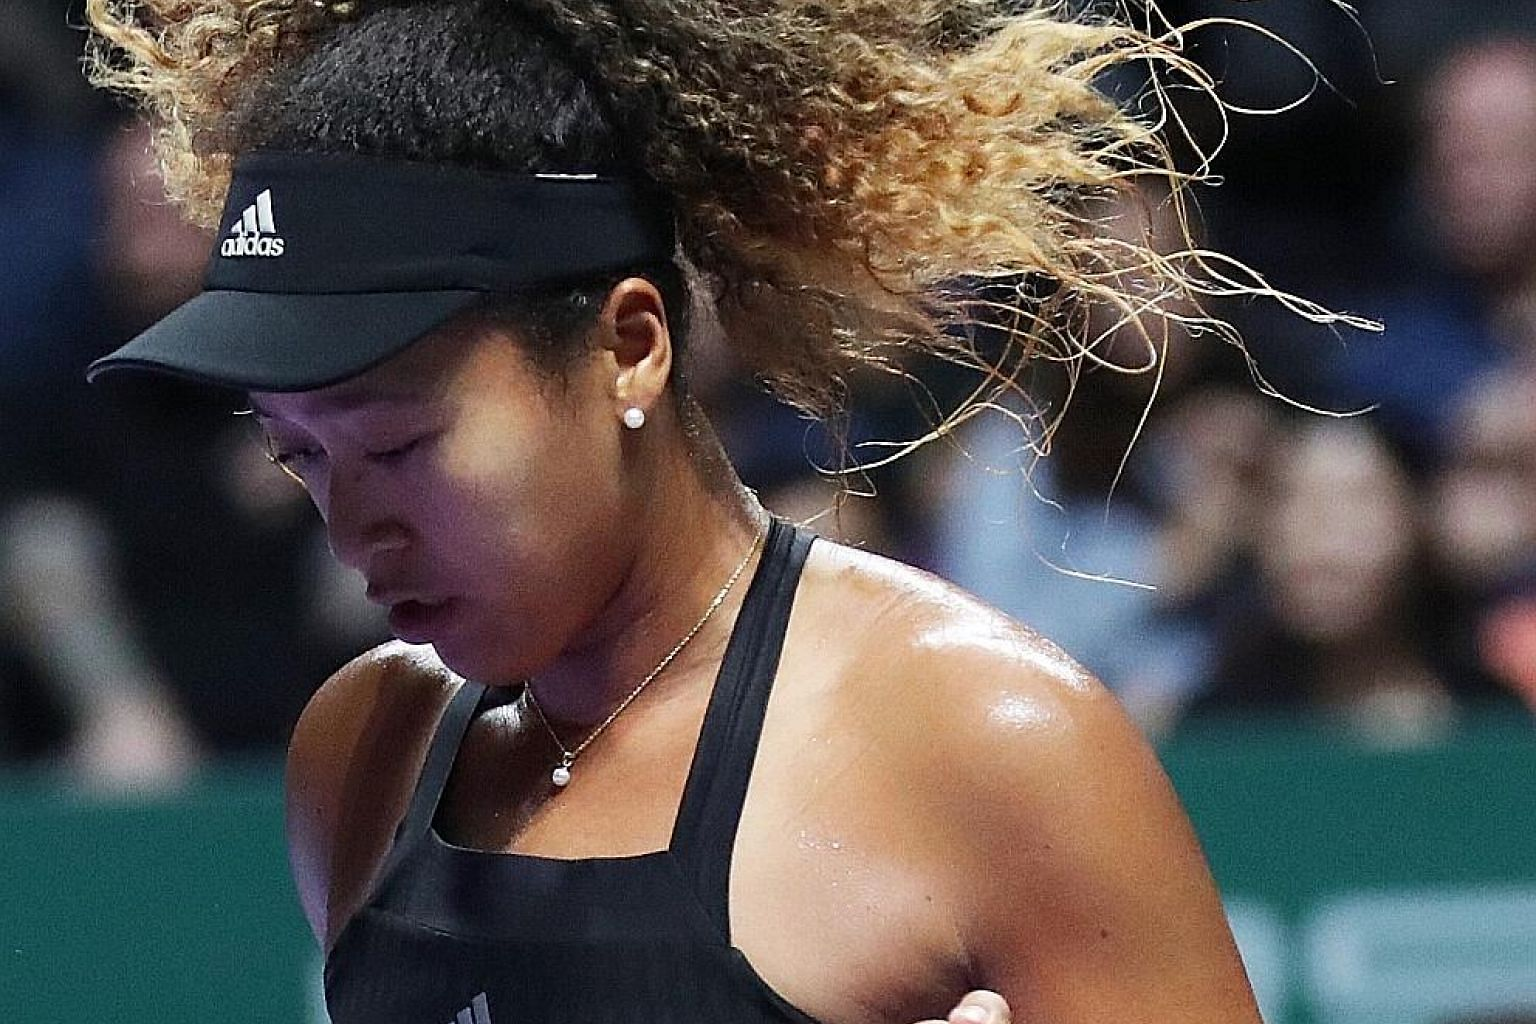 Naomi Osaka is half-Haitian, half-Japanese and now fully adopted by Asia. She is, one might say, a later model Li Na, an Asian charmer in her own right.